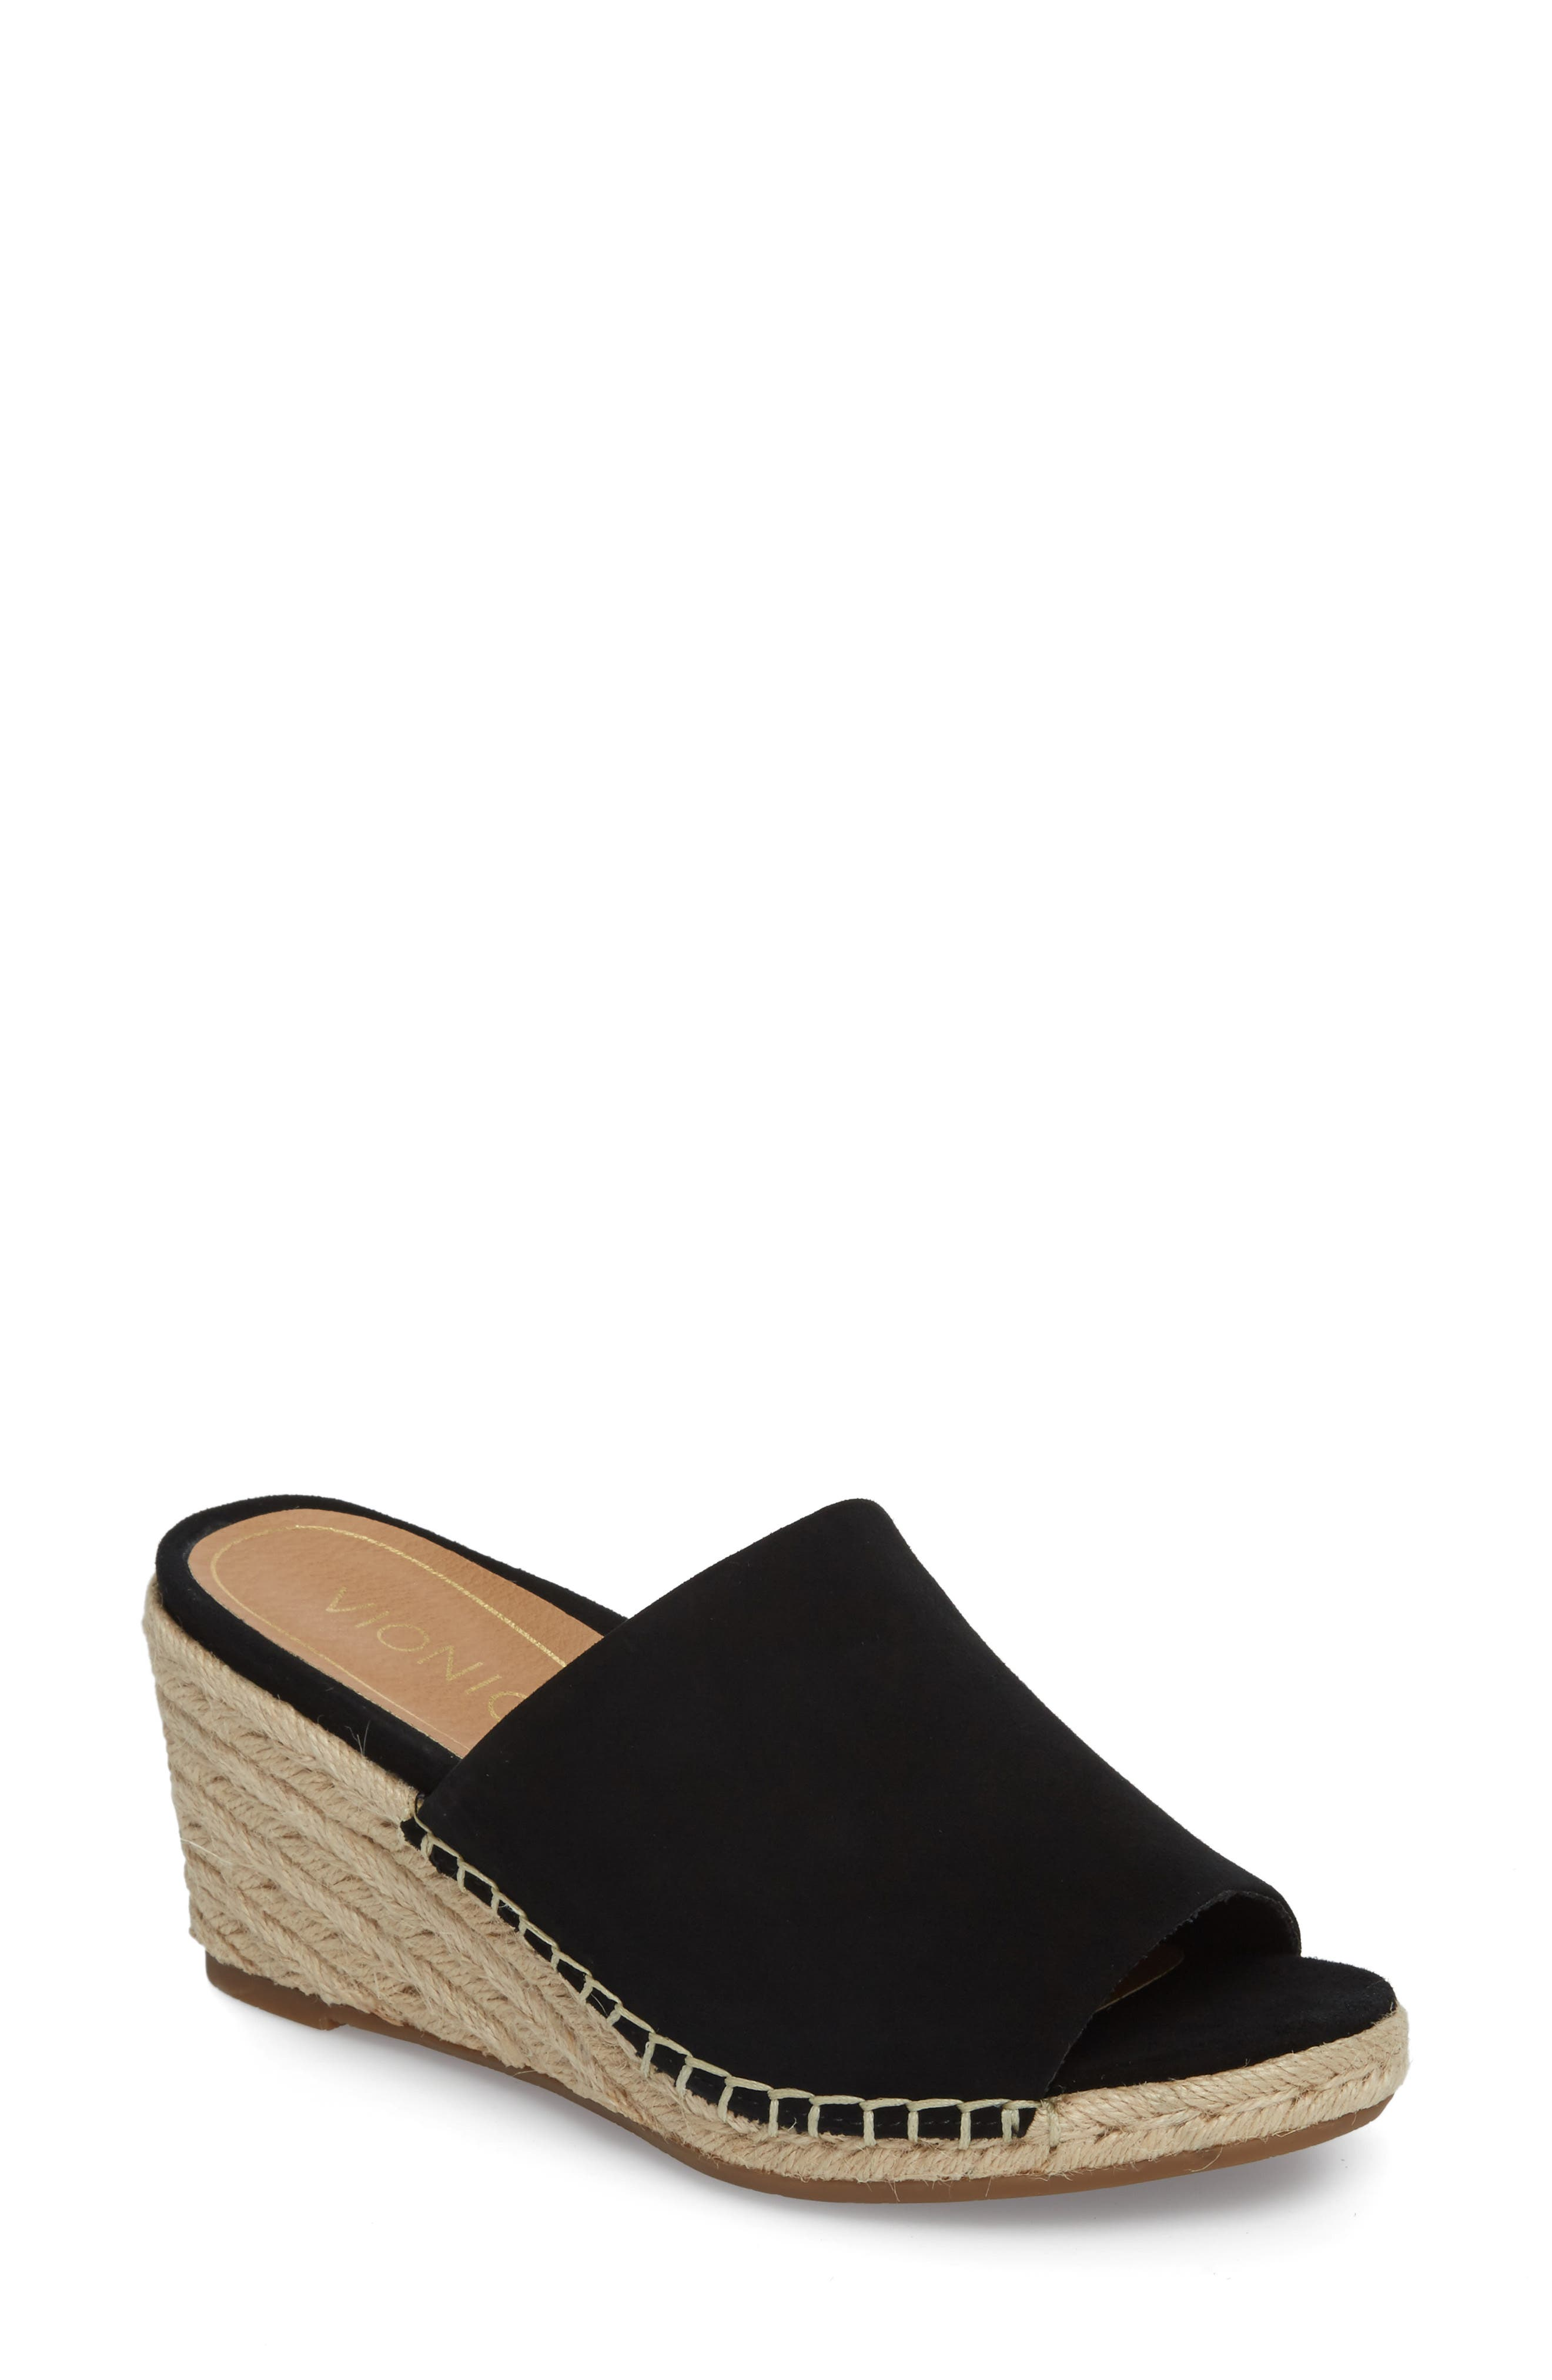 Kadyn Espadrille Wedge Sandal,                         Main,                         color, BLACK SUEDE